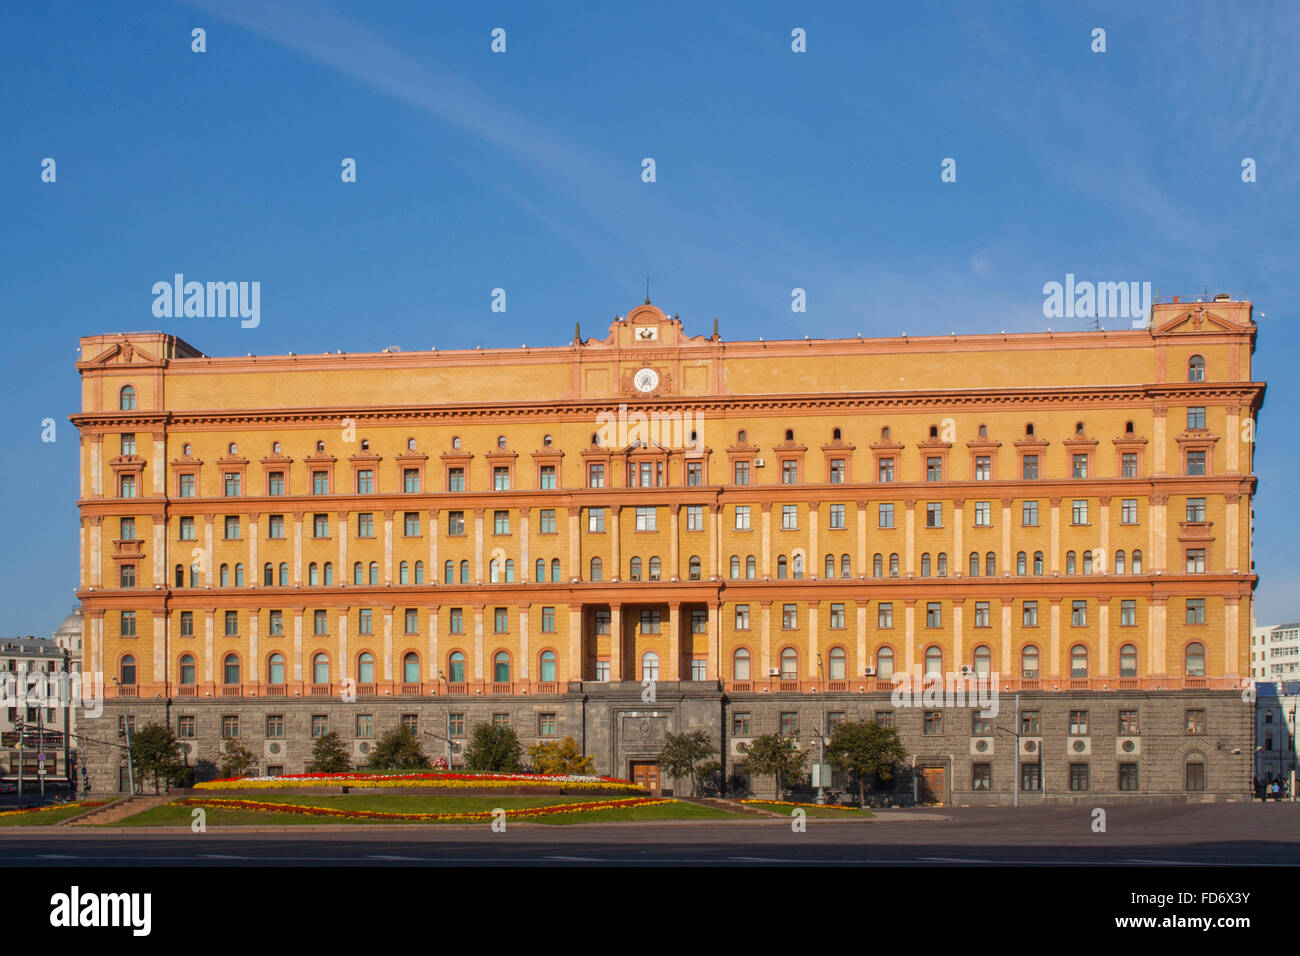 The Lubyanka, KGB headquarters on Lubyanka Square, Moscow, Russia - Stock Image